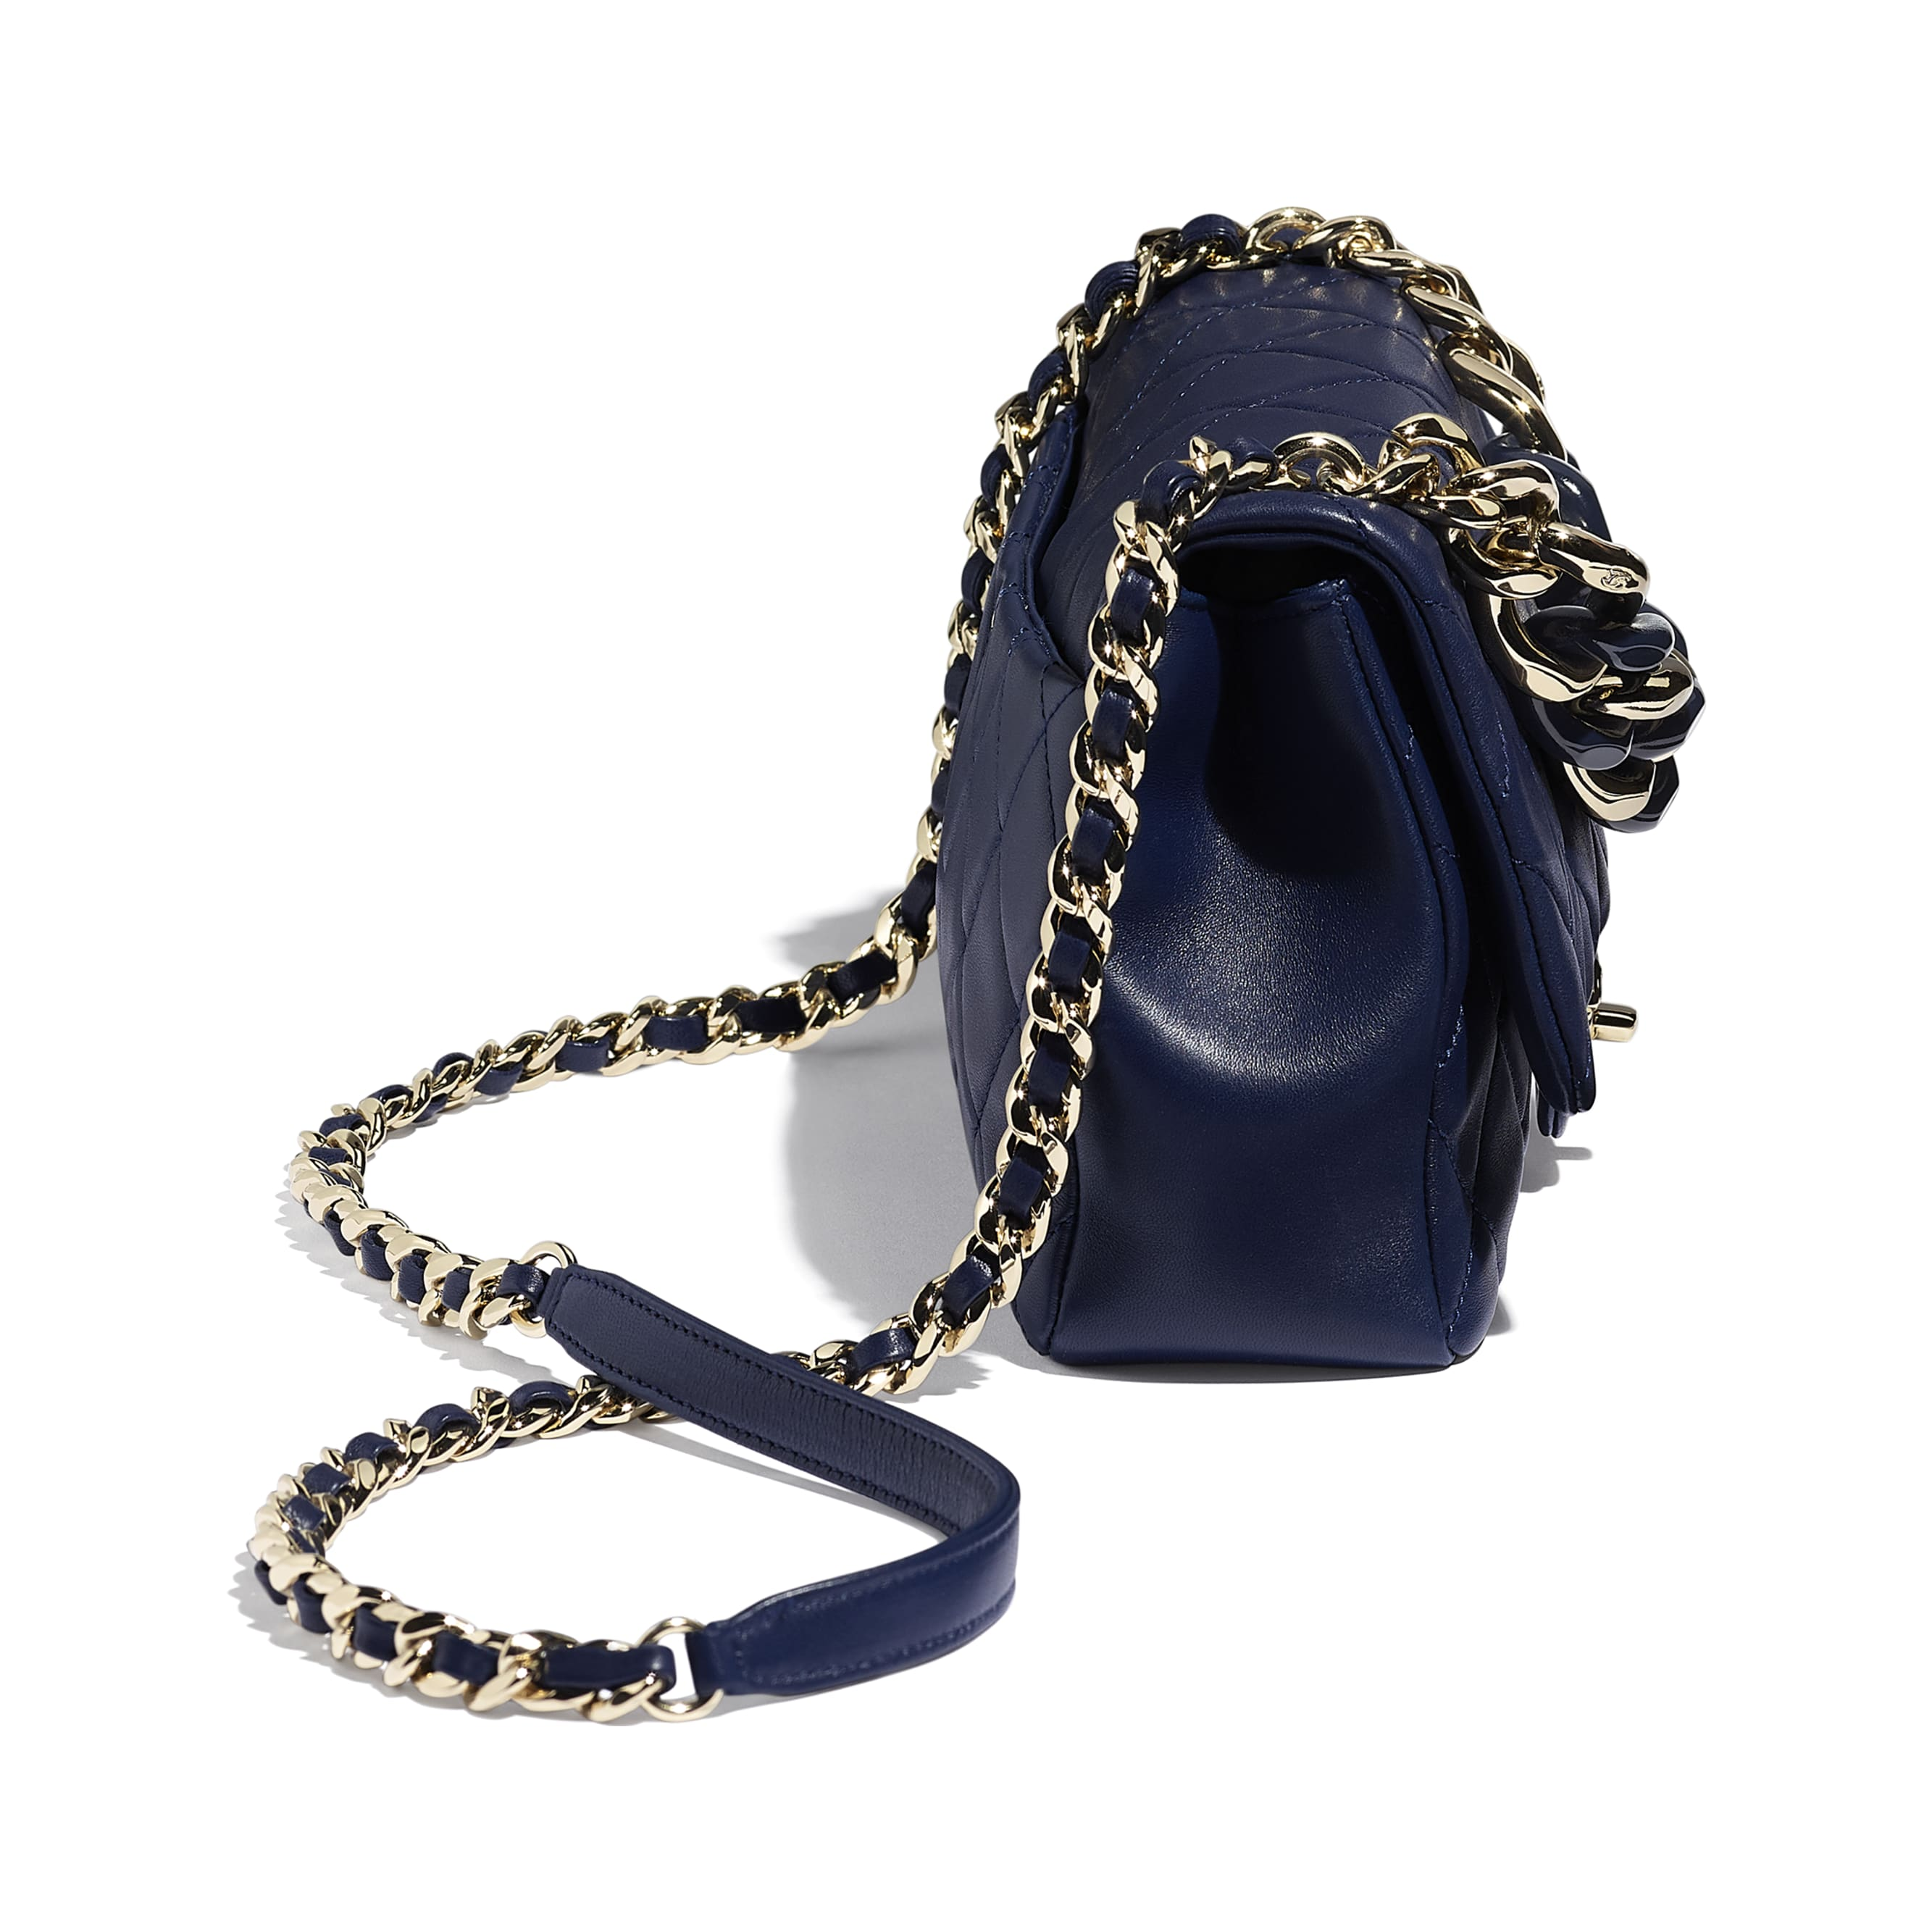 Large Flap Bag - Navy Blue - Lambskin, Resin & Gold-Tone Metal - Extra view - see standard sized version